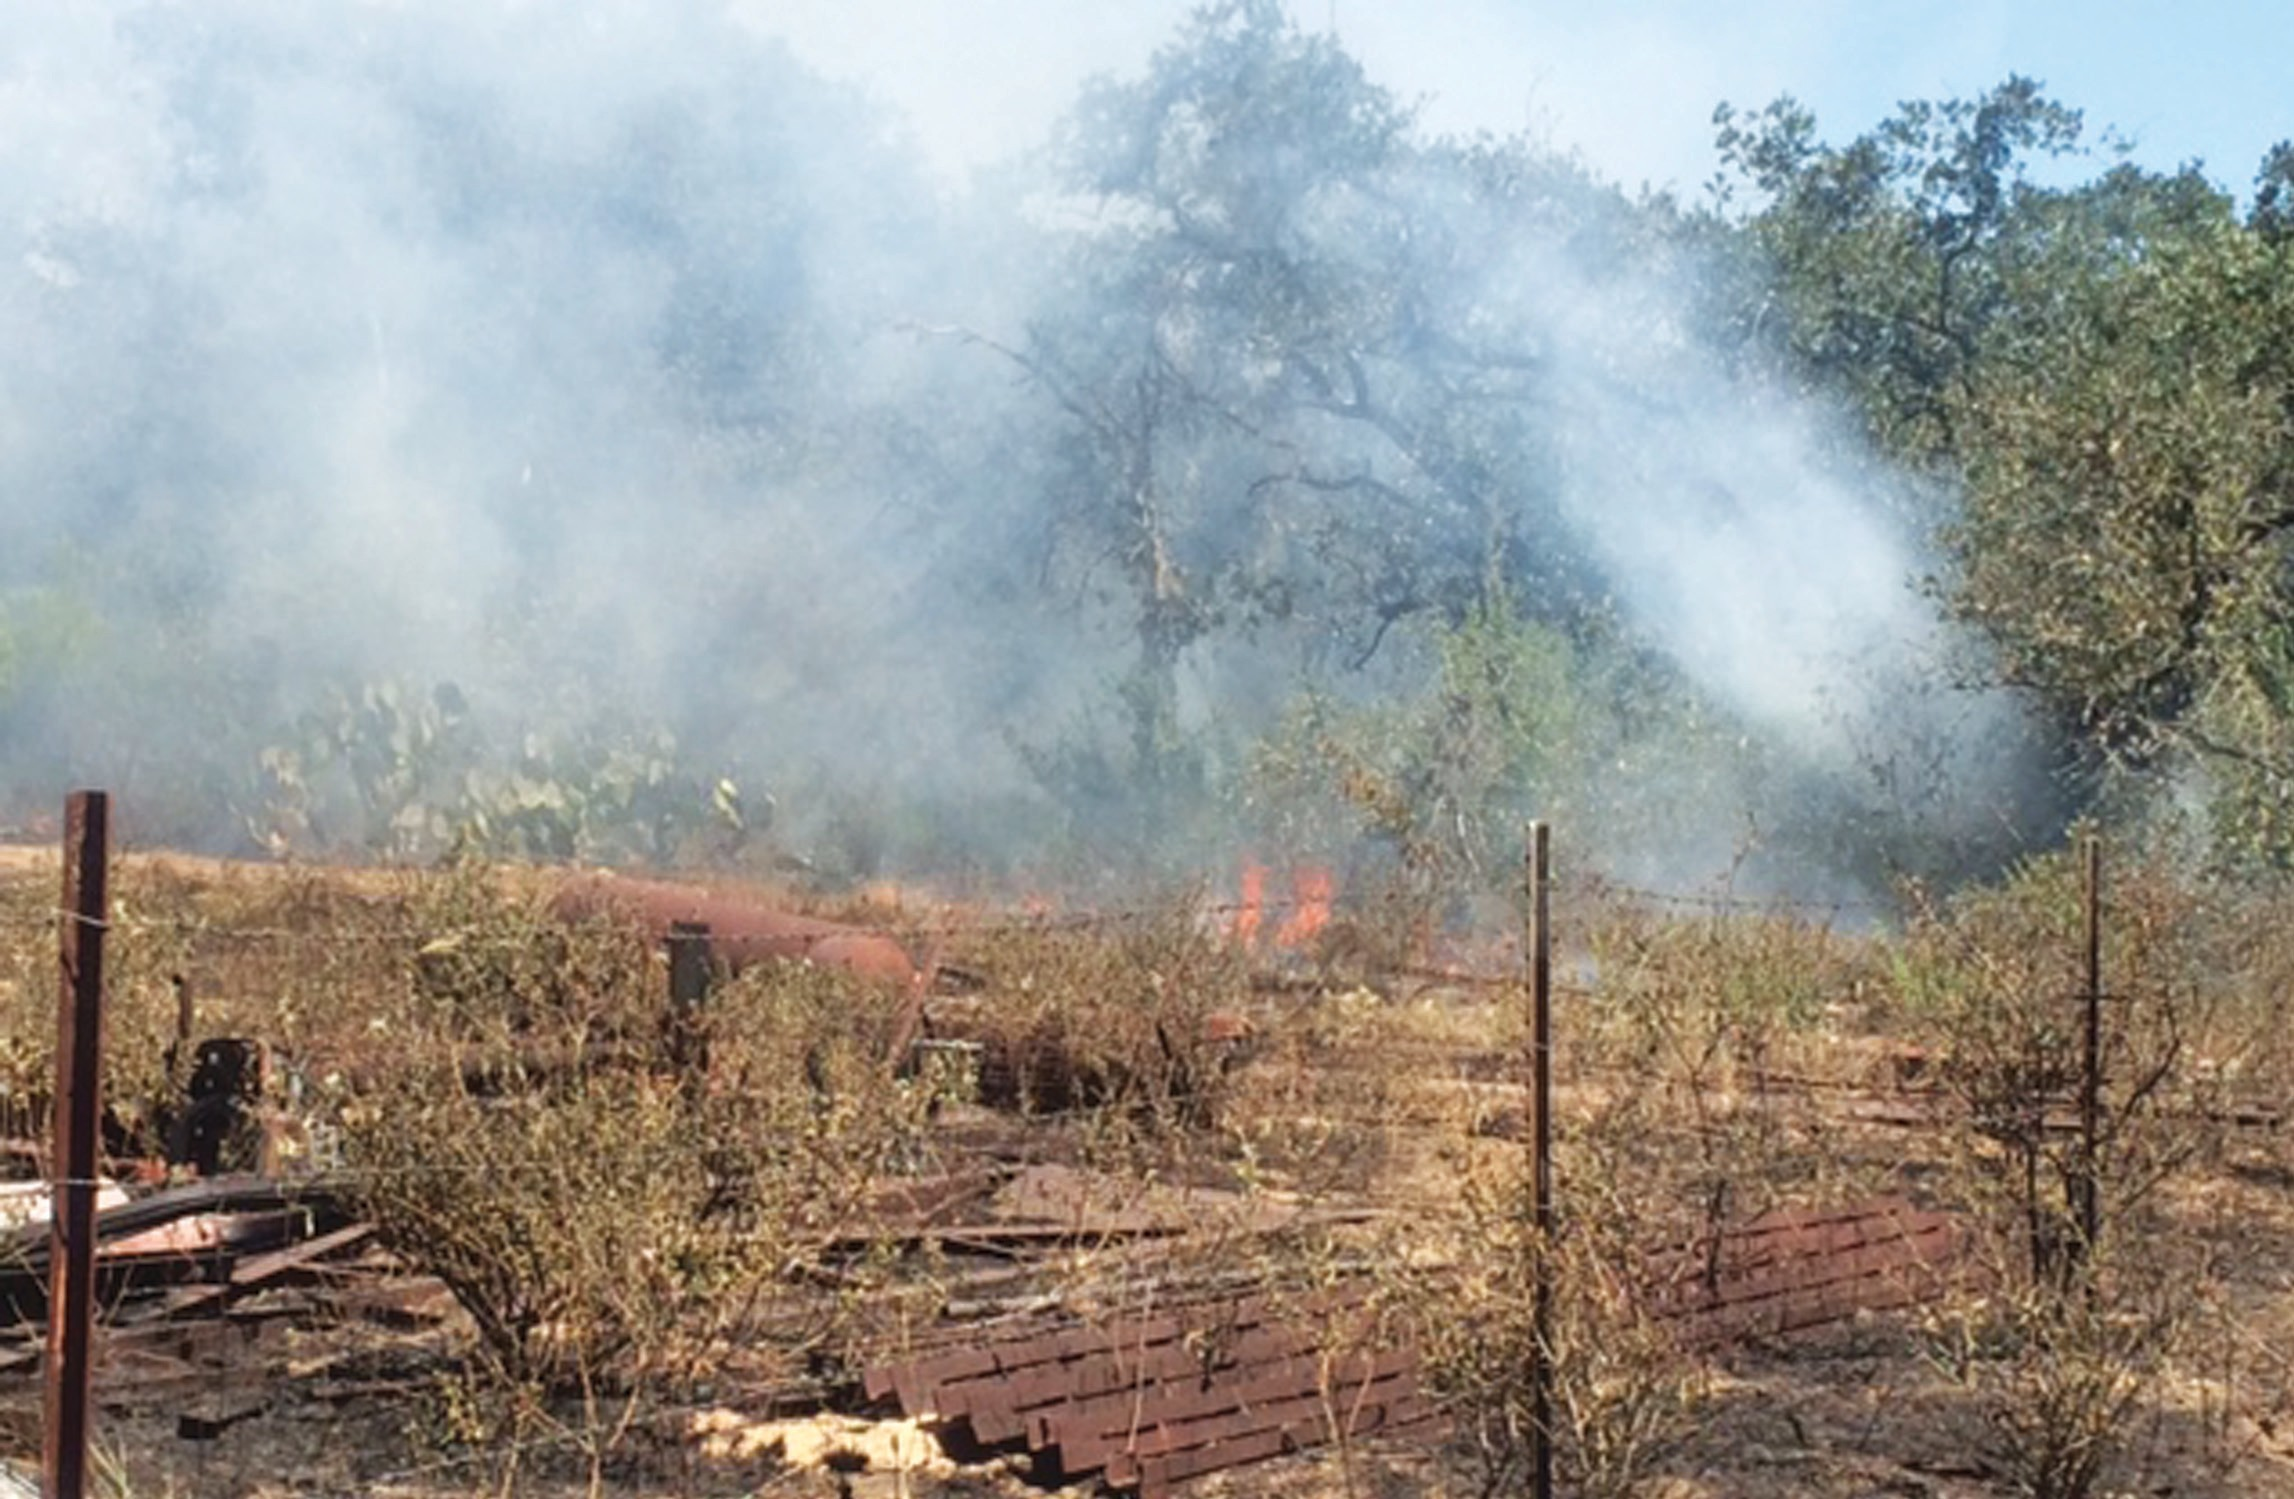 Shortly after four o'clock, Sunday afternoon, Sept. 13, a fire at 780 Quail Meadow Ln., south of Lytle was responded to and eventually created a situation where 375 acres were involved. 21 area fire departments that brought 37 units helped put out the blaze. Fire was 95% contained by about 11:30 p.m. and was completely contained around 2 a.m., Monday morning.